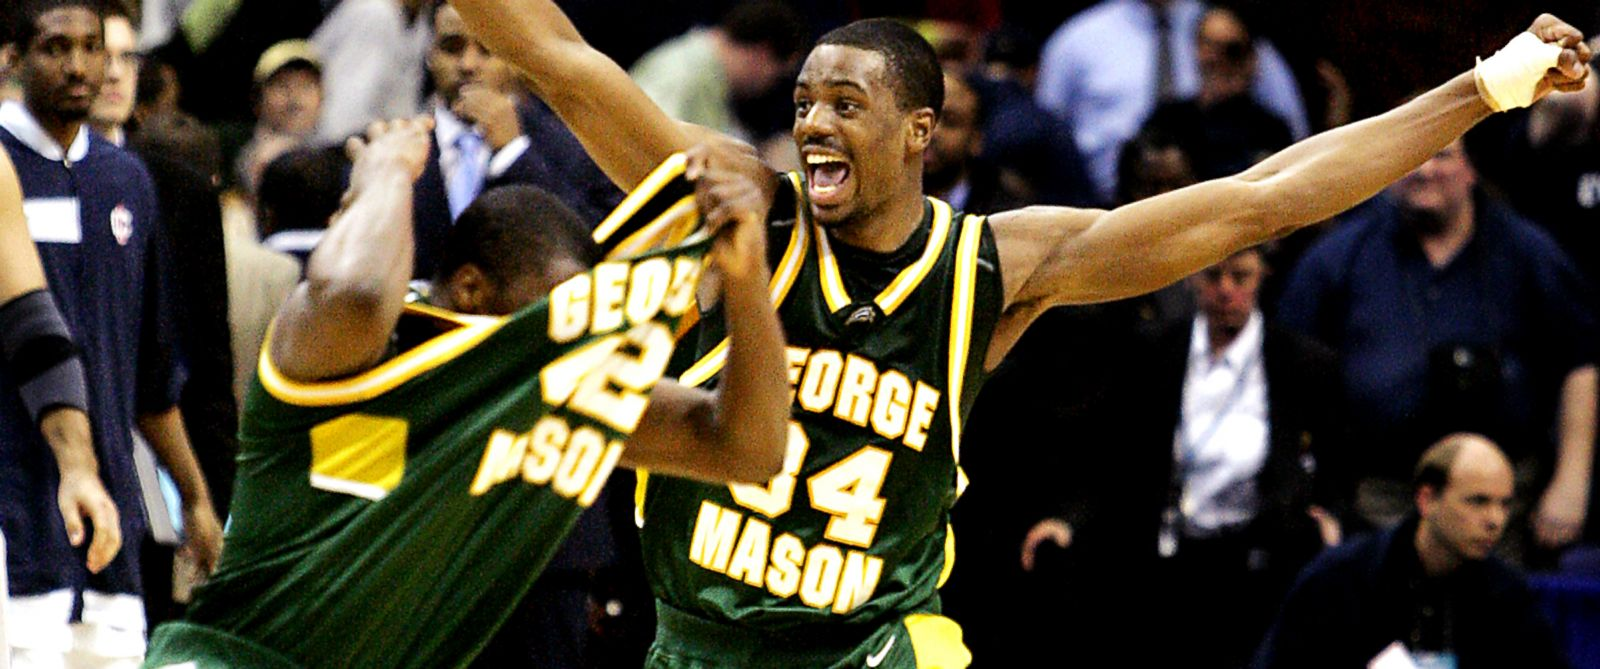 PHOTO: After beating Connecticut in overtime, George Mason teammates celebrate after defeating No. 1 seed UCONN, 86-84 in Washington during the NCAA tournament, March 26, 2006.